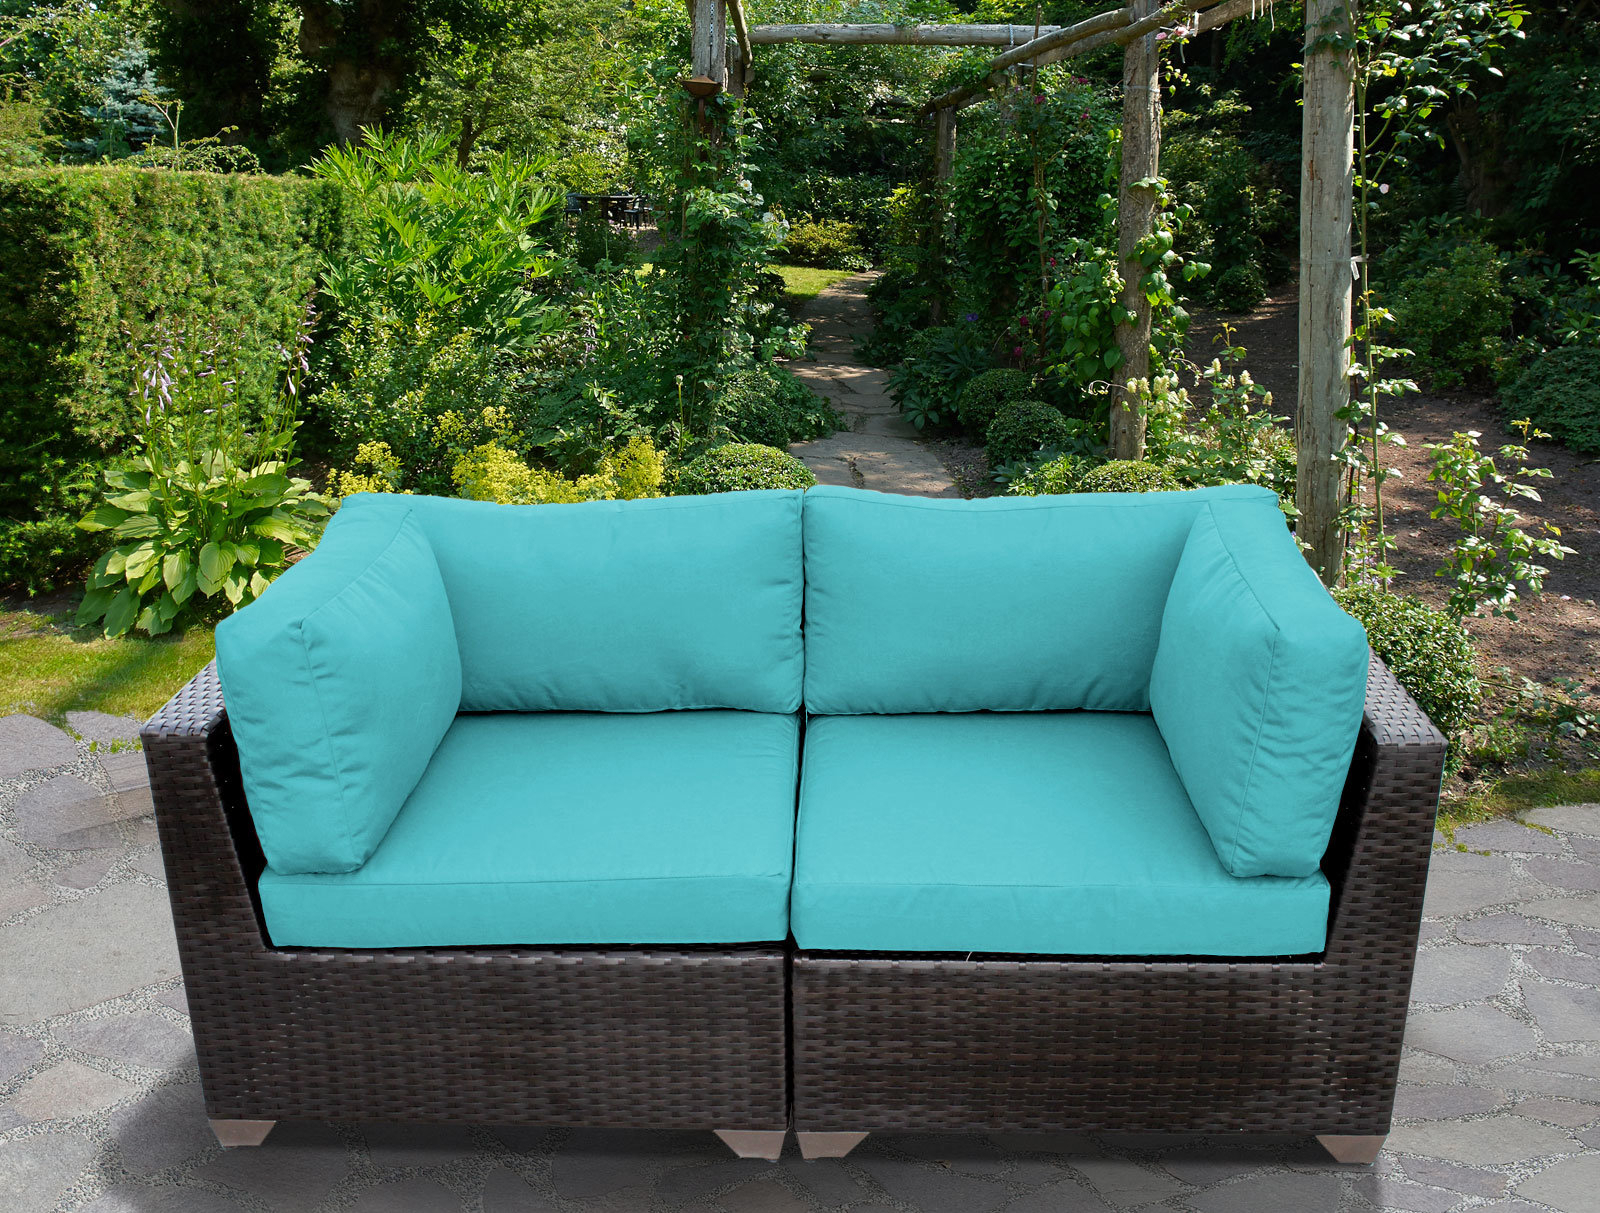 Preferred Camak Patio Loveseat With Cushions Throughout Belton Loveseats With Cushions (View 23 of 25)